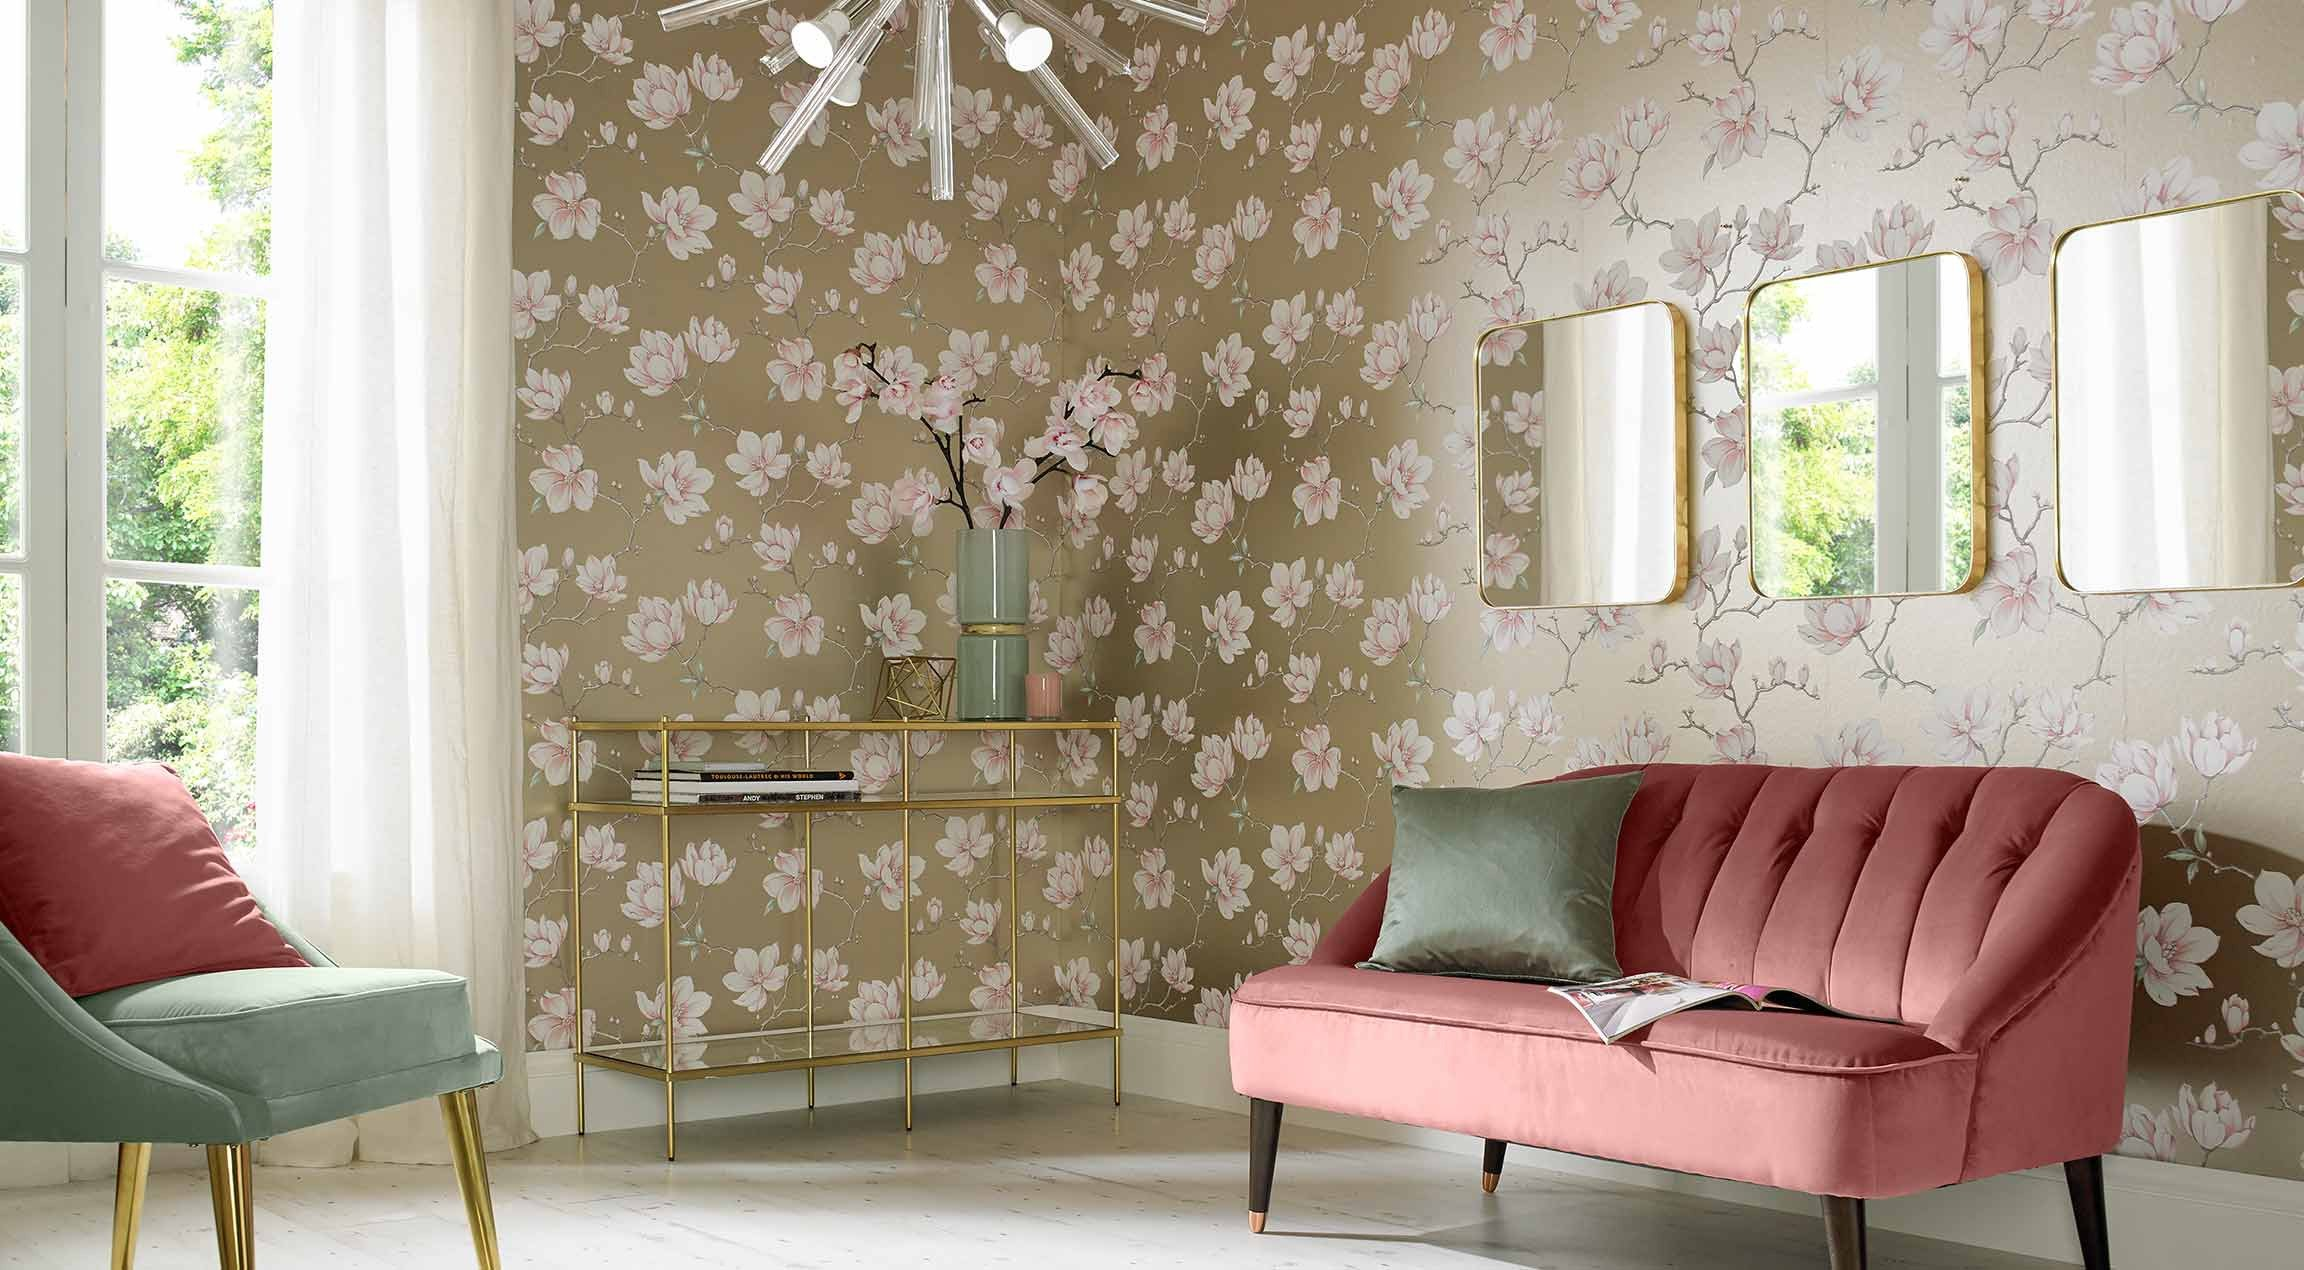 Wallpaper for Living Room Ideas Lovely Wallpaper for Walls Wall Coverings